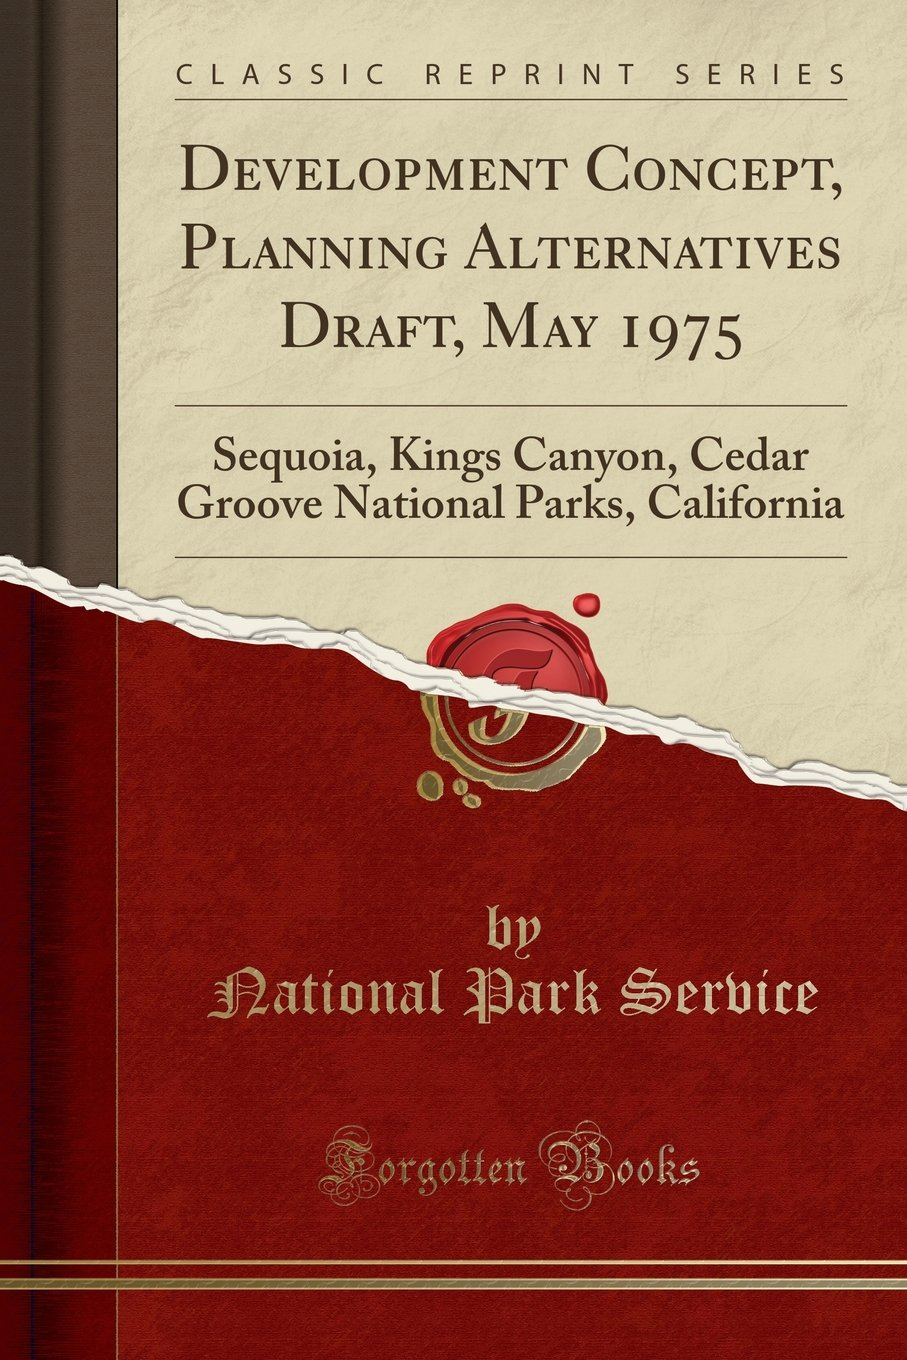 Download Development Concept, Planning Alternatives Draft, May 1975: Sequoia, Kings Canyon, Cedar Groove National Parks, California (Classic Reprint) pdf